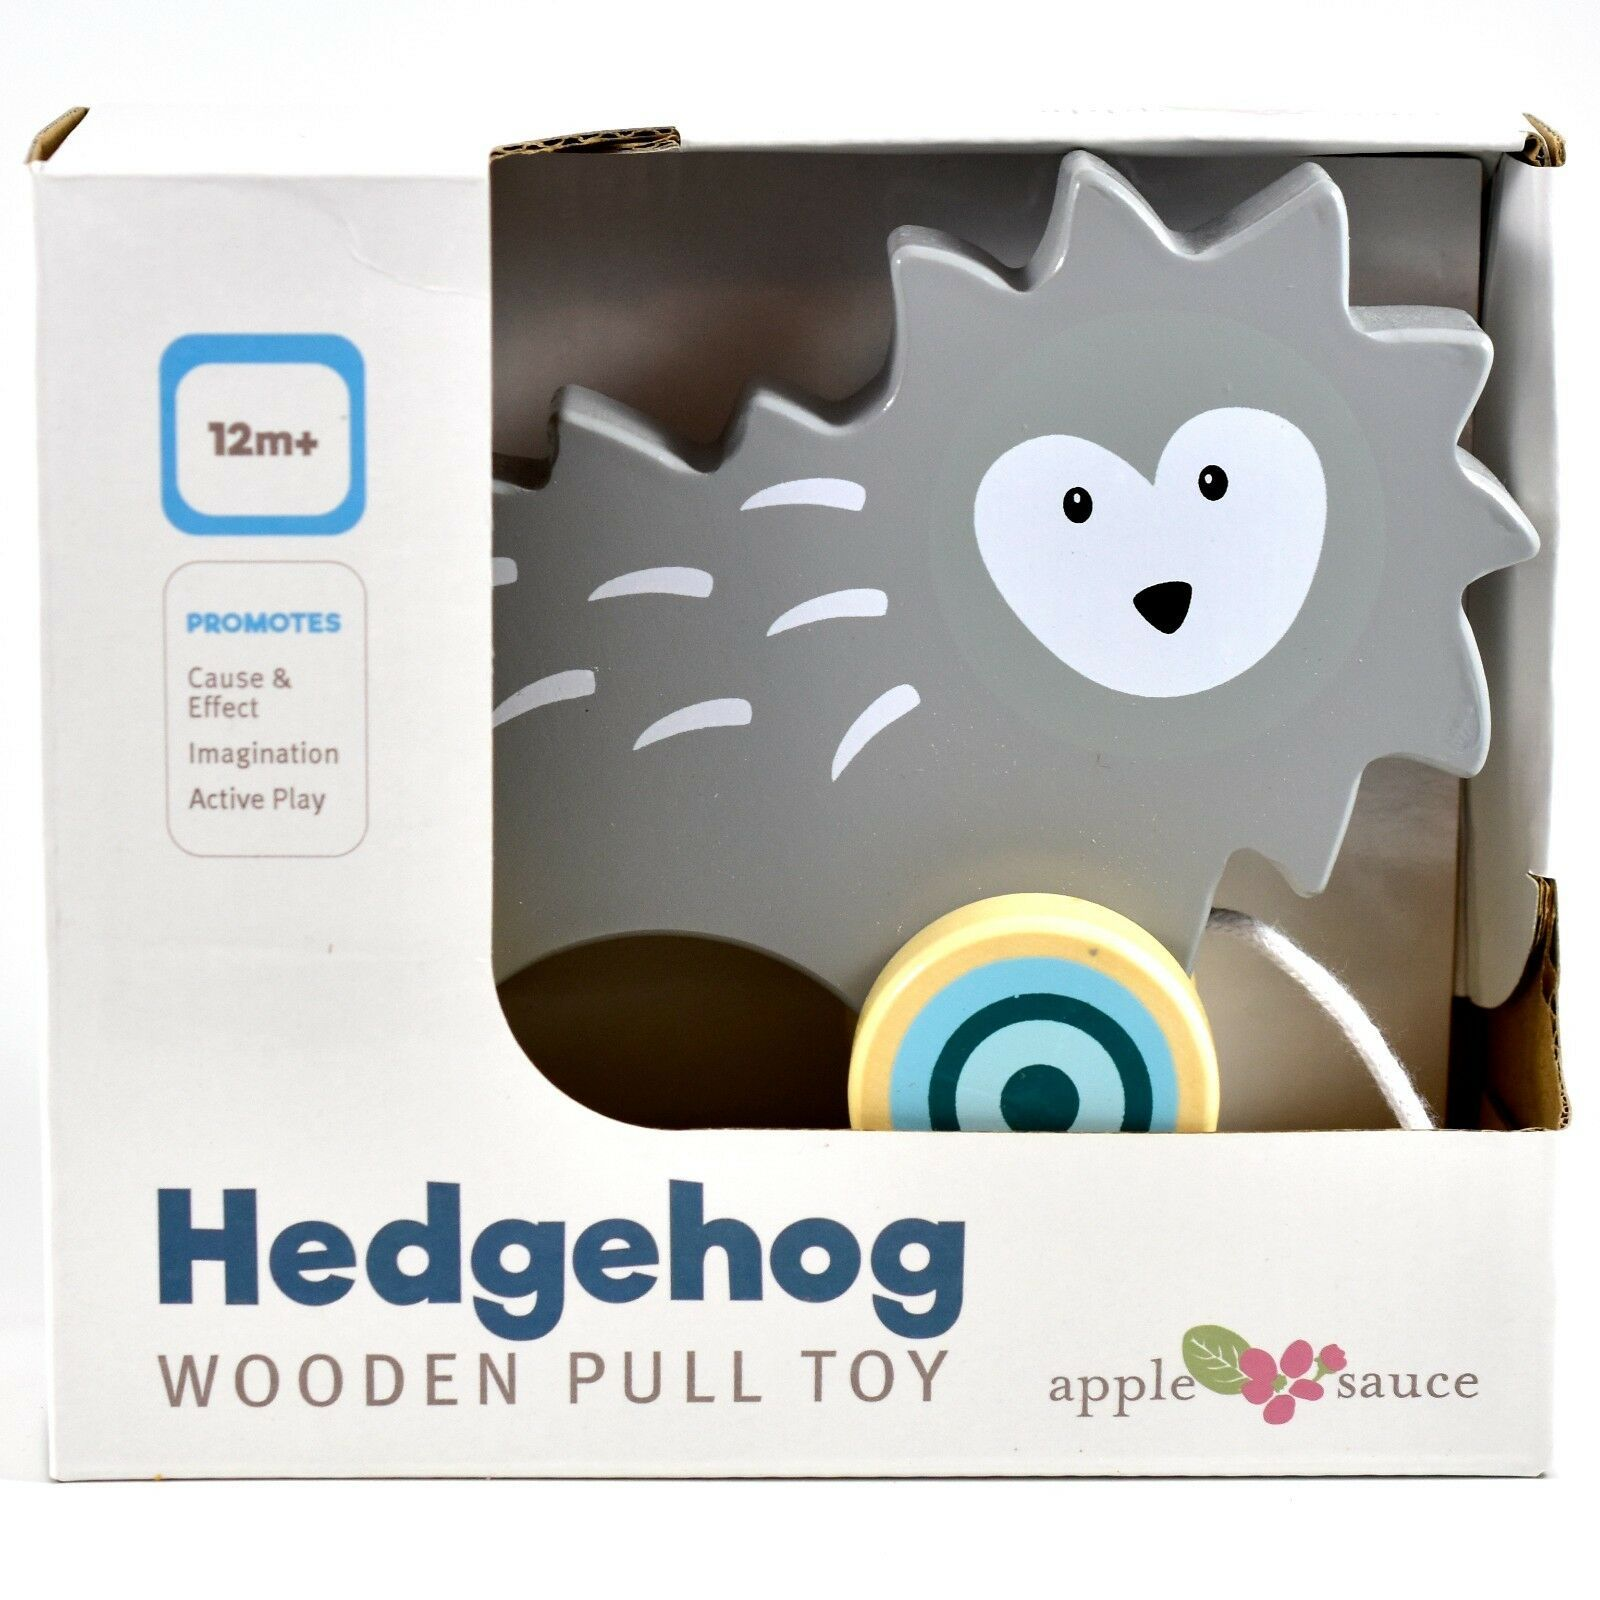 Applesauce Hedgehog Baby Wooden Pull Toy for Toddlers Children Ages 12+ Month